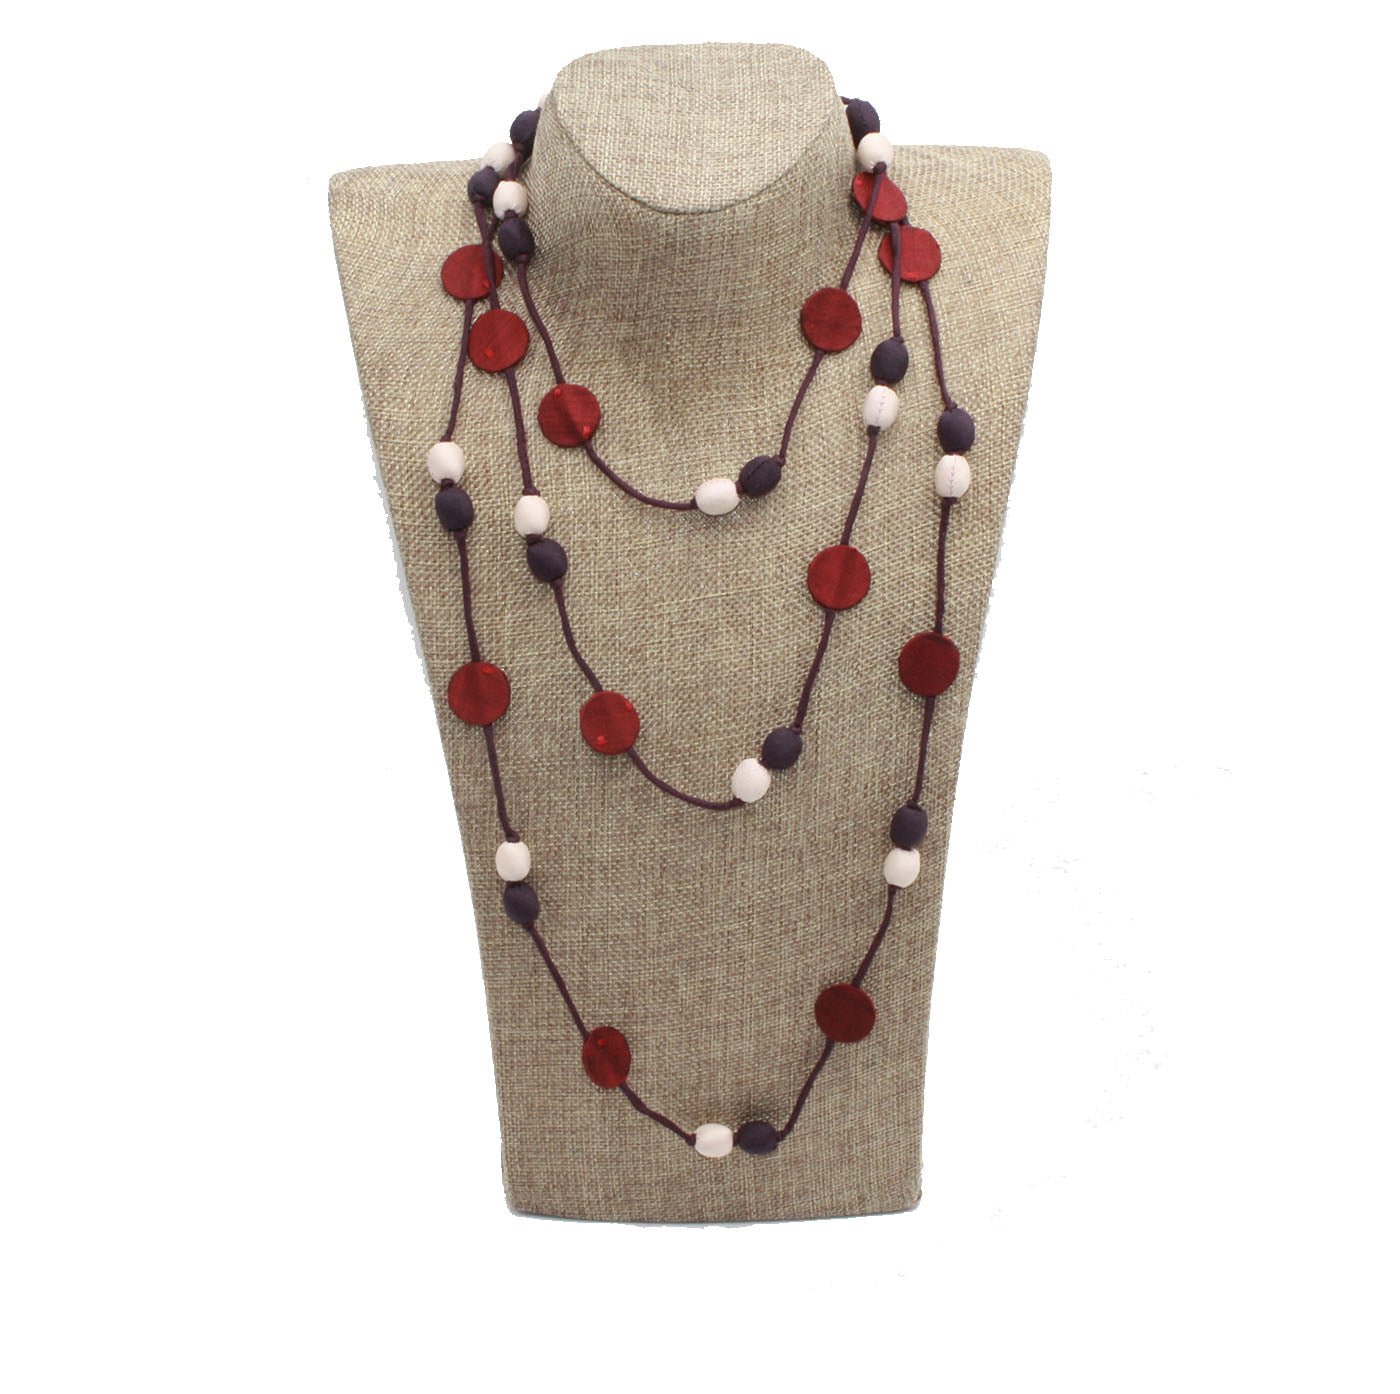 sari beads seramic paula jewelry originals and silver dichroic ceramic necklace bead silk glass shop radke